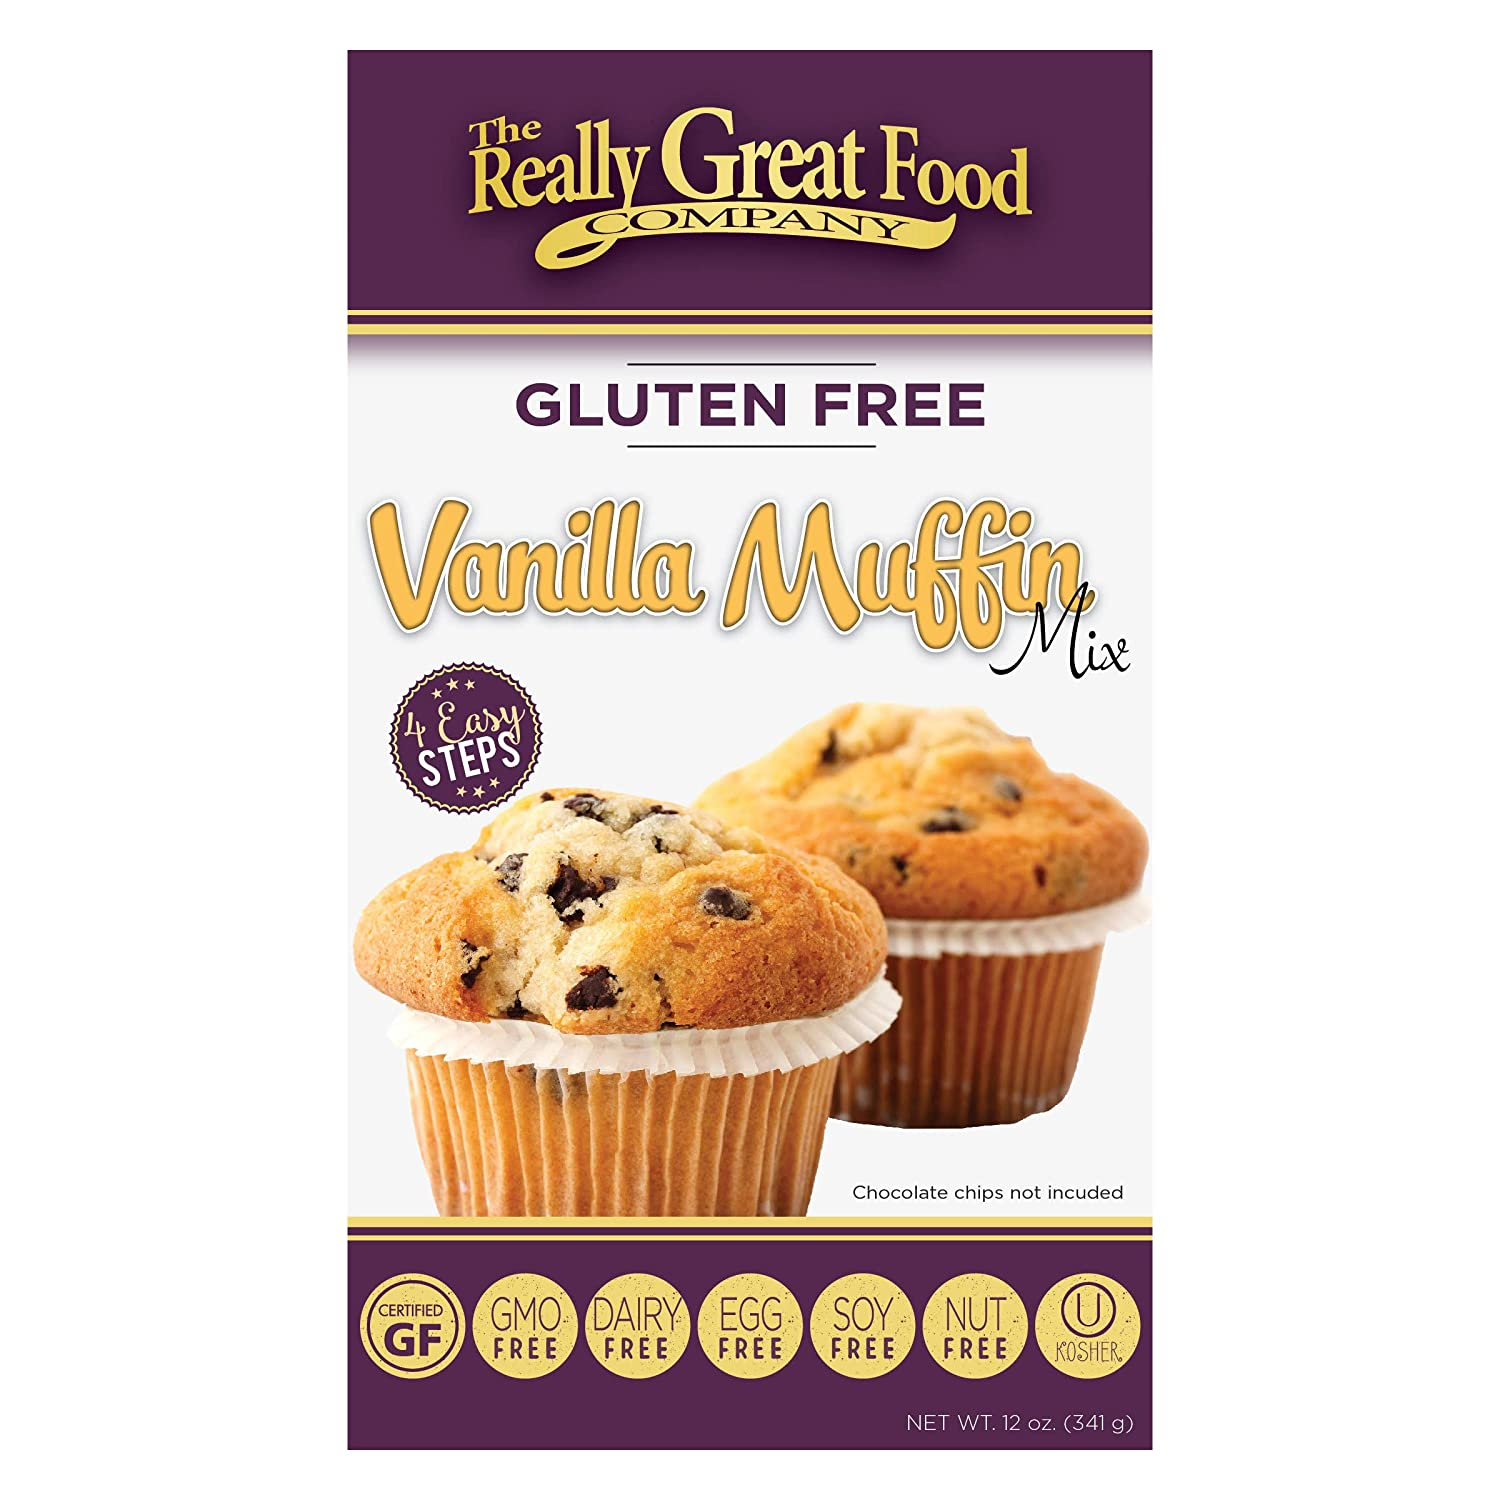 Really Great Food Company – Gluten Free Vanilla Muffin Mix – 12 ounce box - No Nuts, Soy, Dairy, Eggs - Vegan, Kosher, Non-GMO and Plant Based